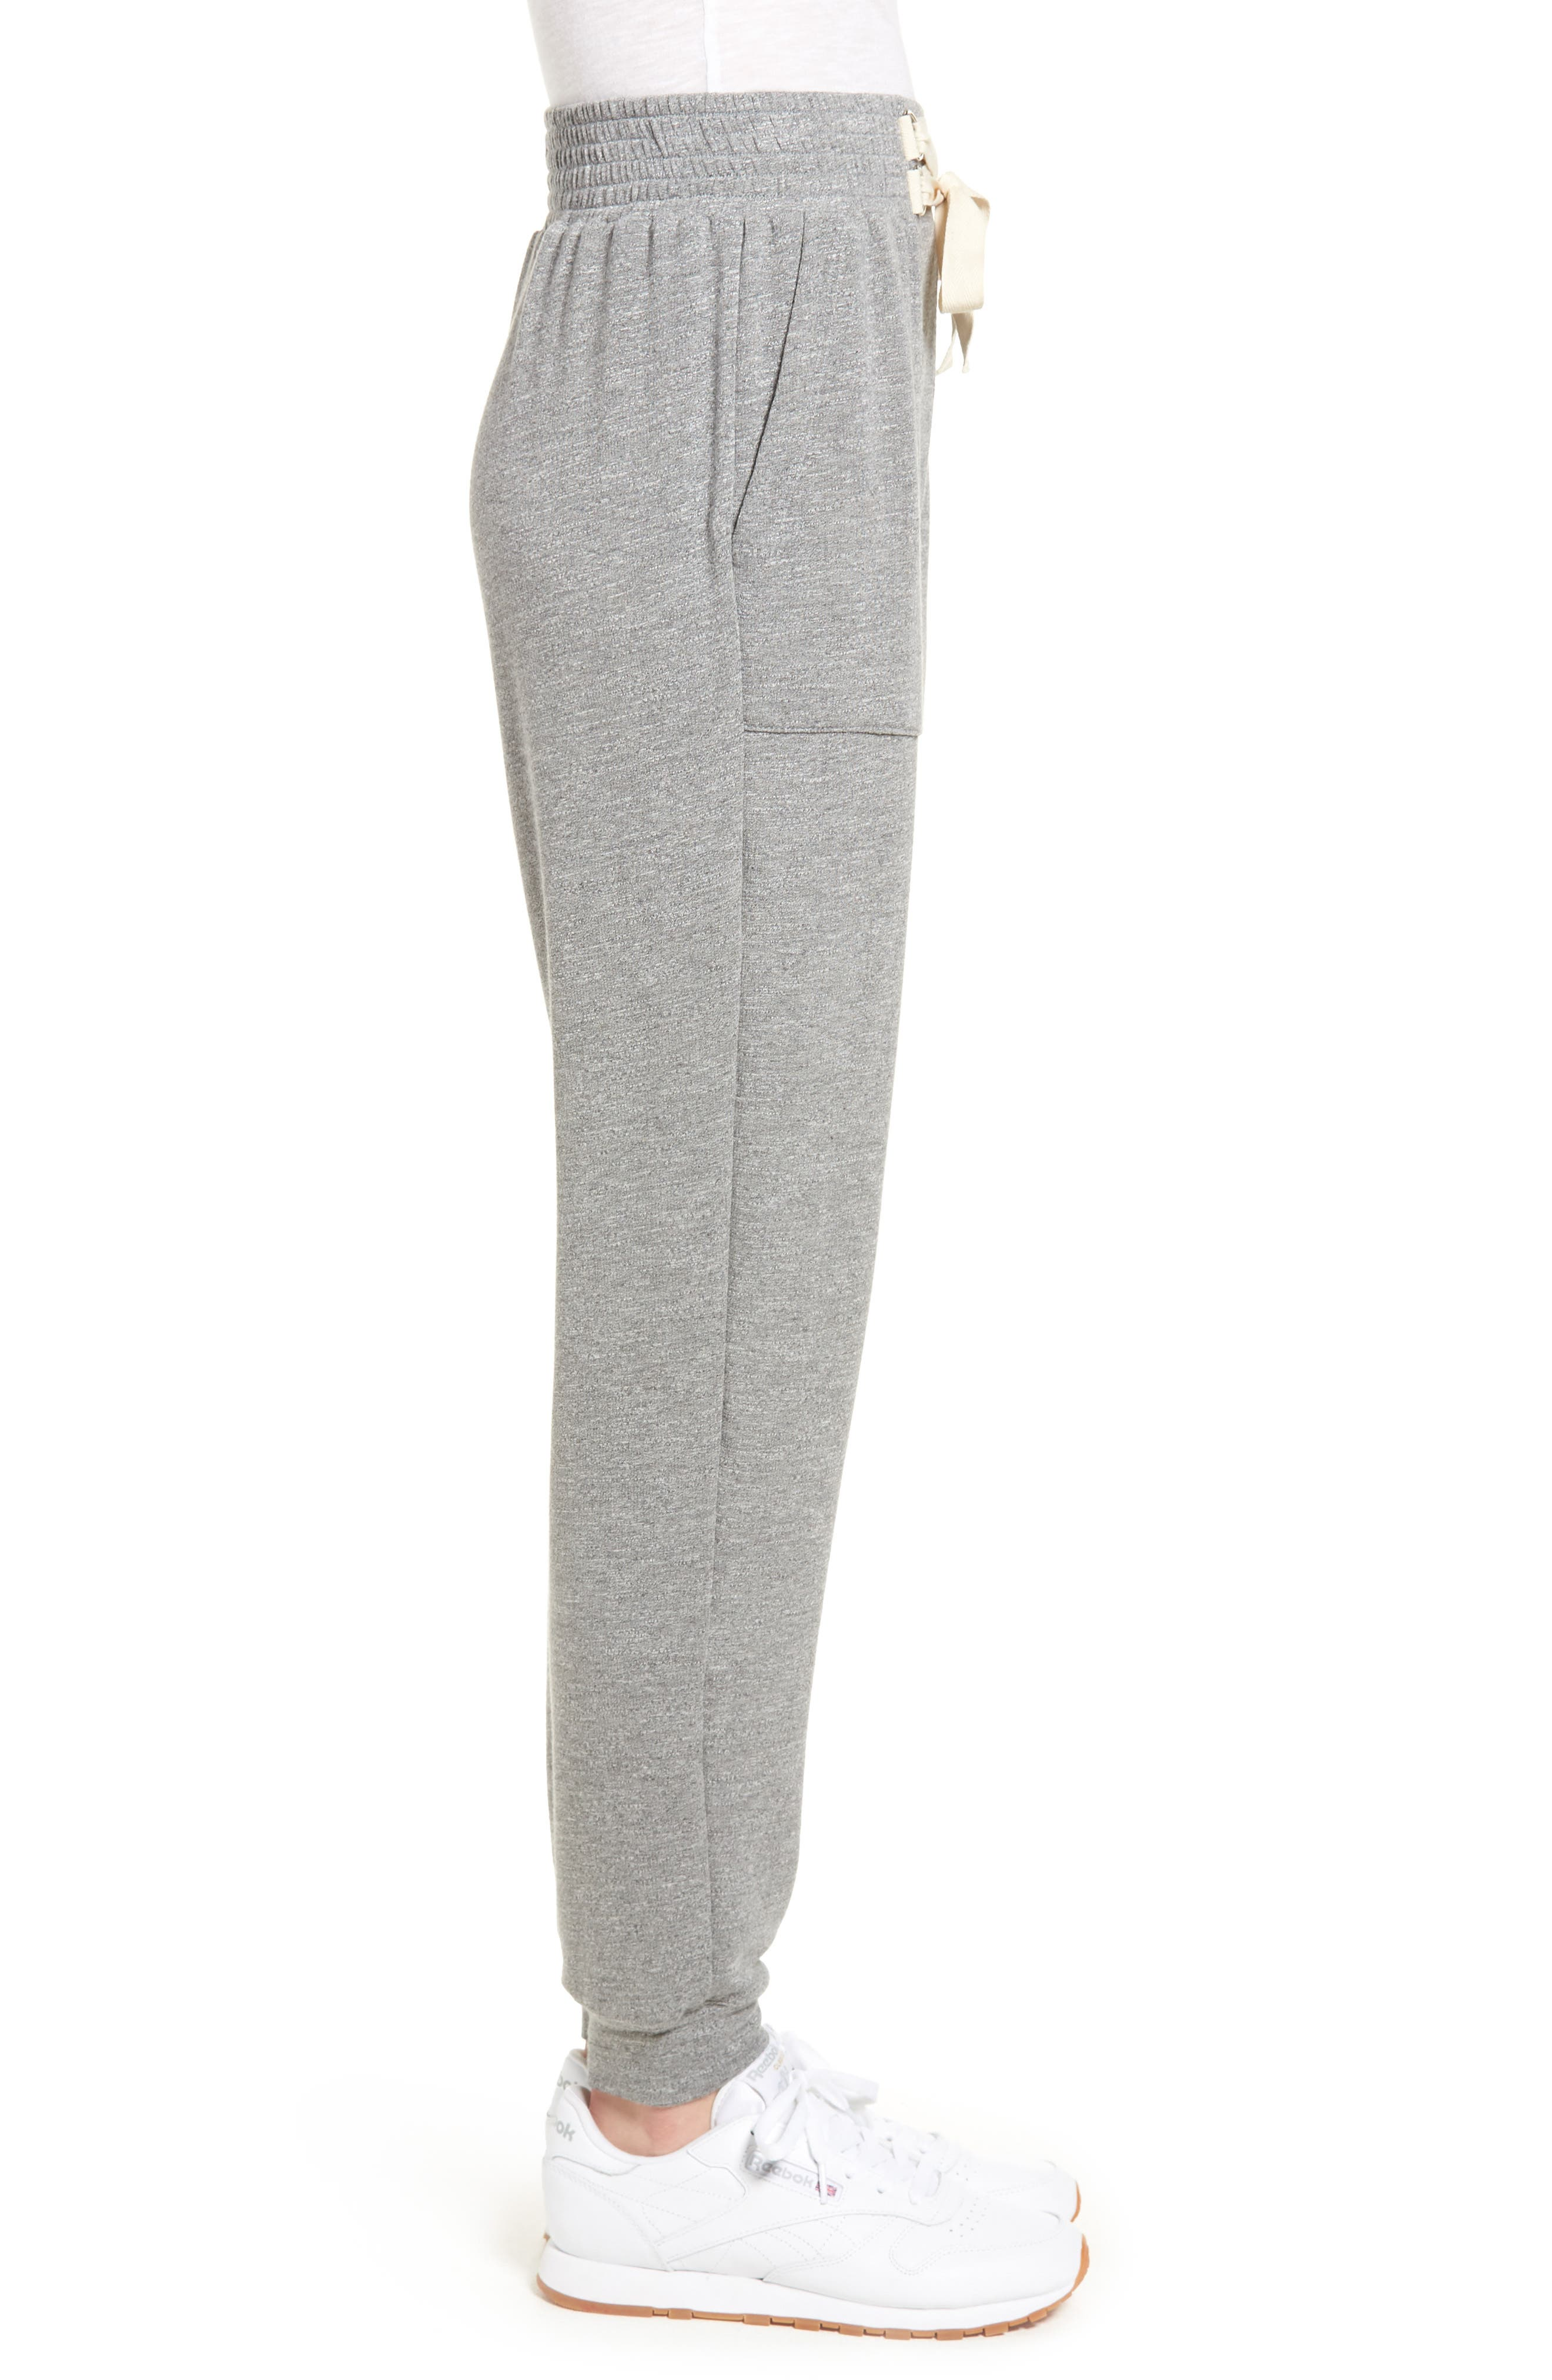 Dream Active Jogger Pants,                             Alternate thumbnail 3, color,                             Heather Grey